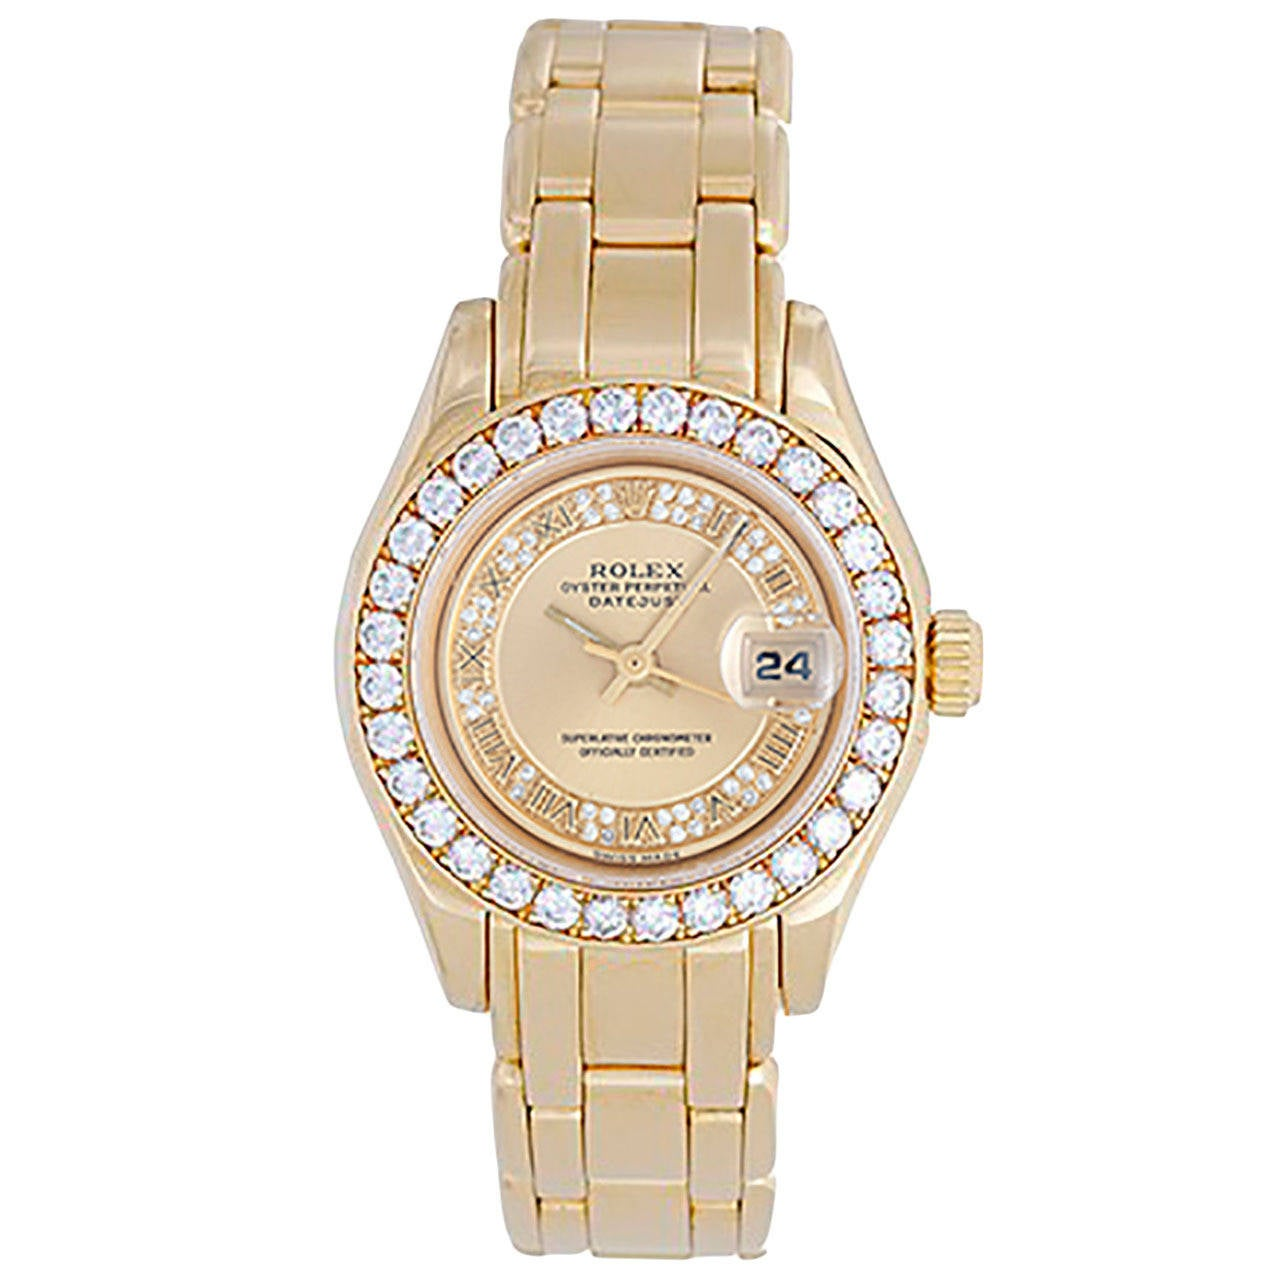 Rolex Lady's Yellow Gold Masterpiece/Pearlmaster Automatic Wristwatch Ref 69298 1